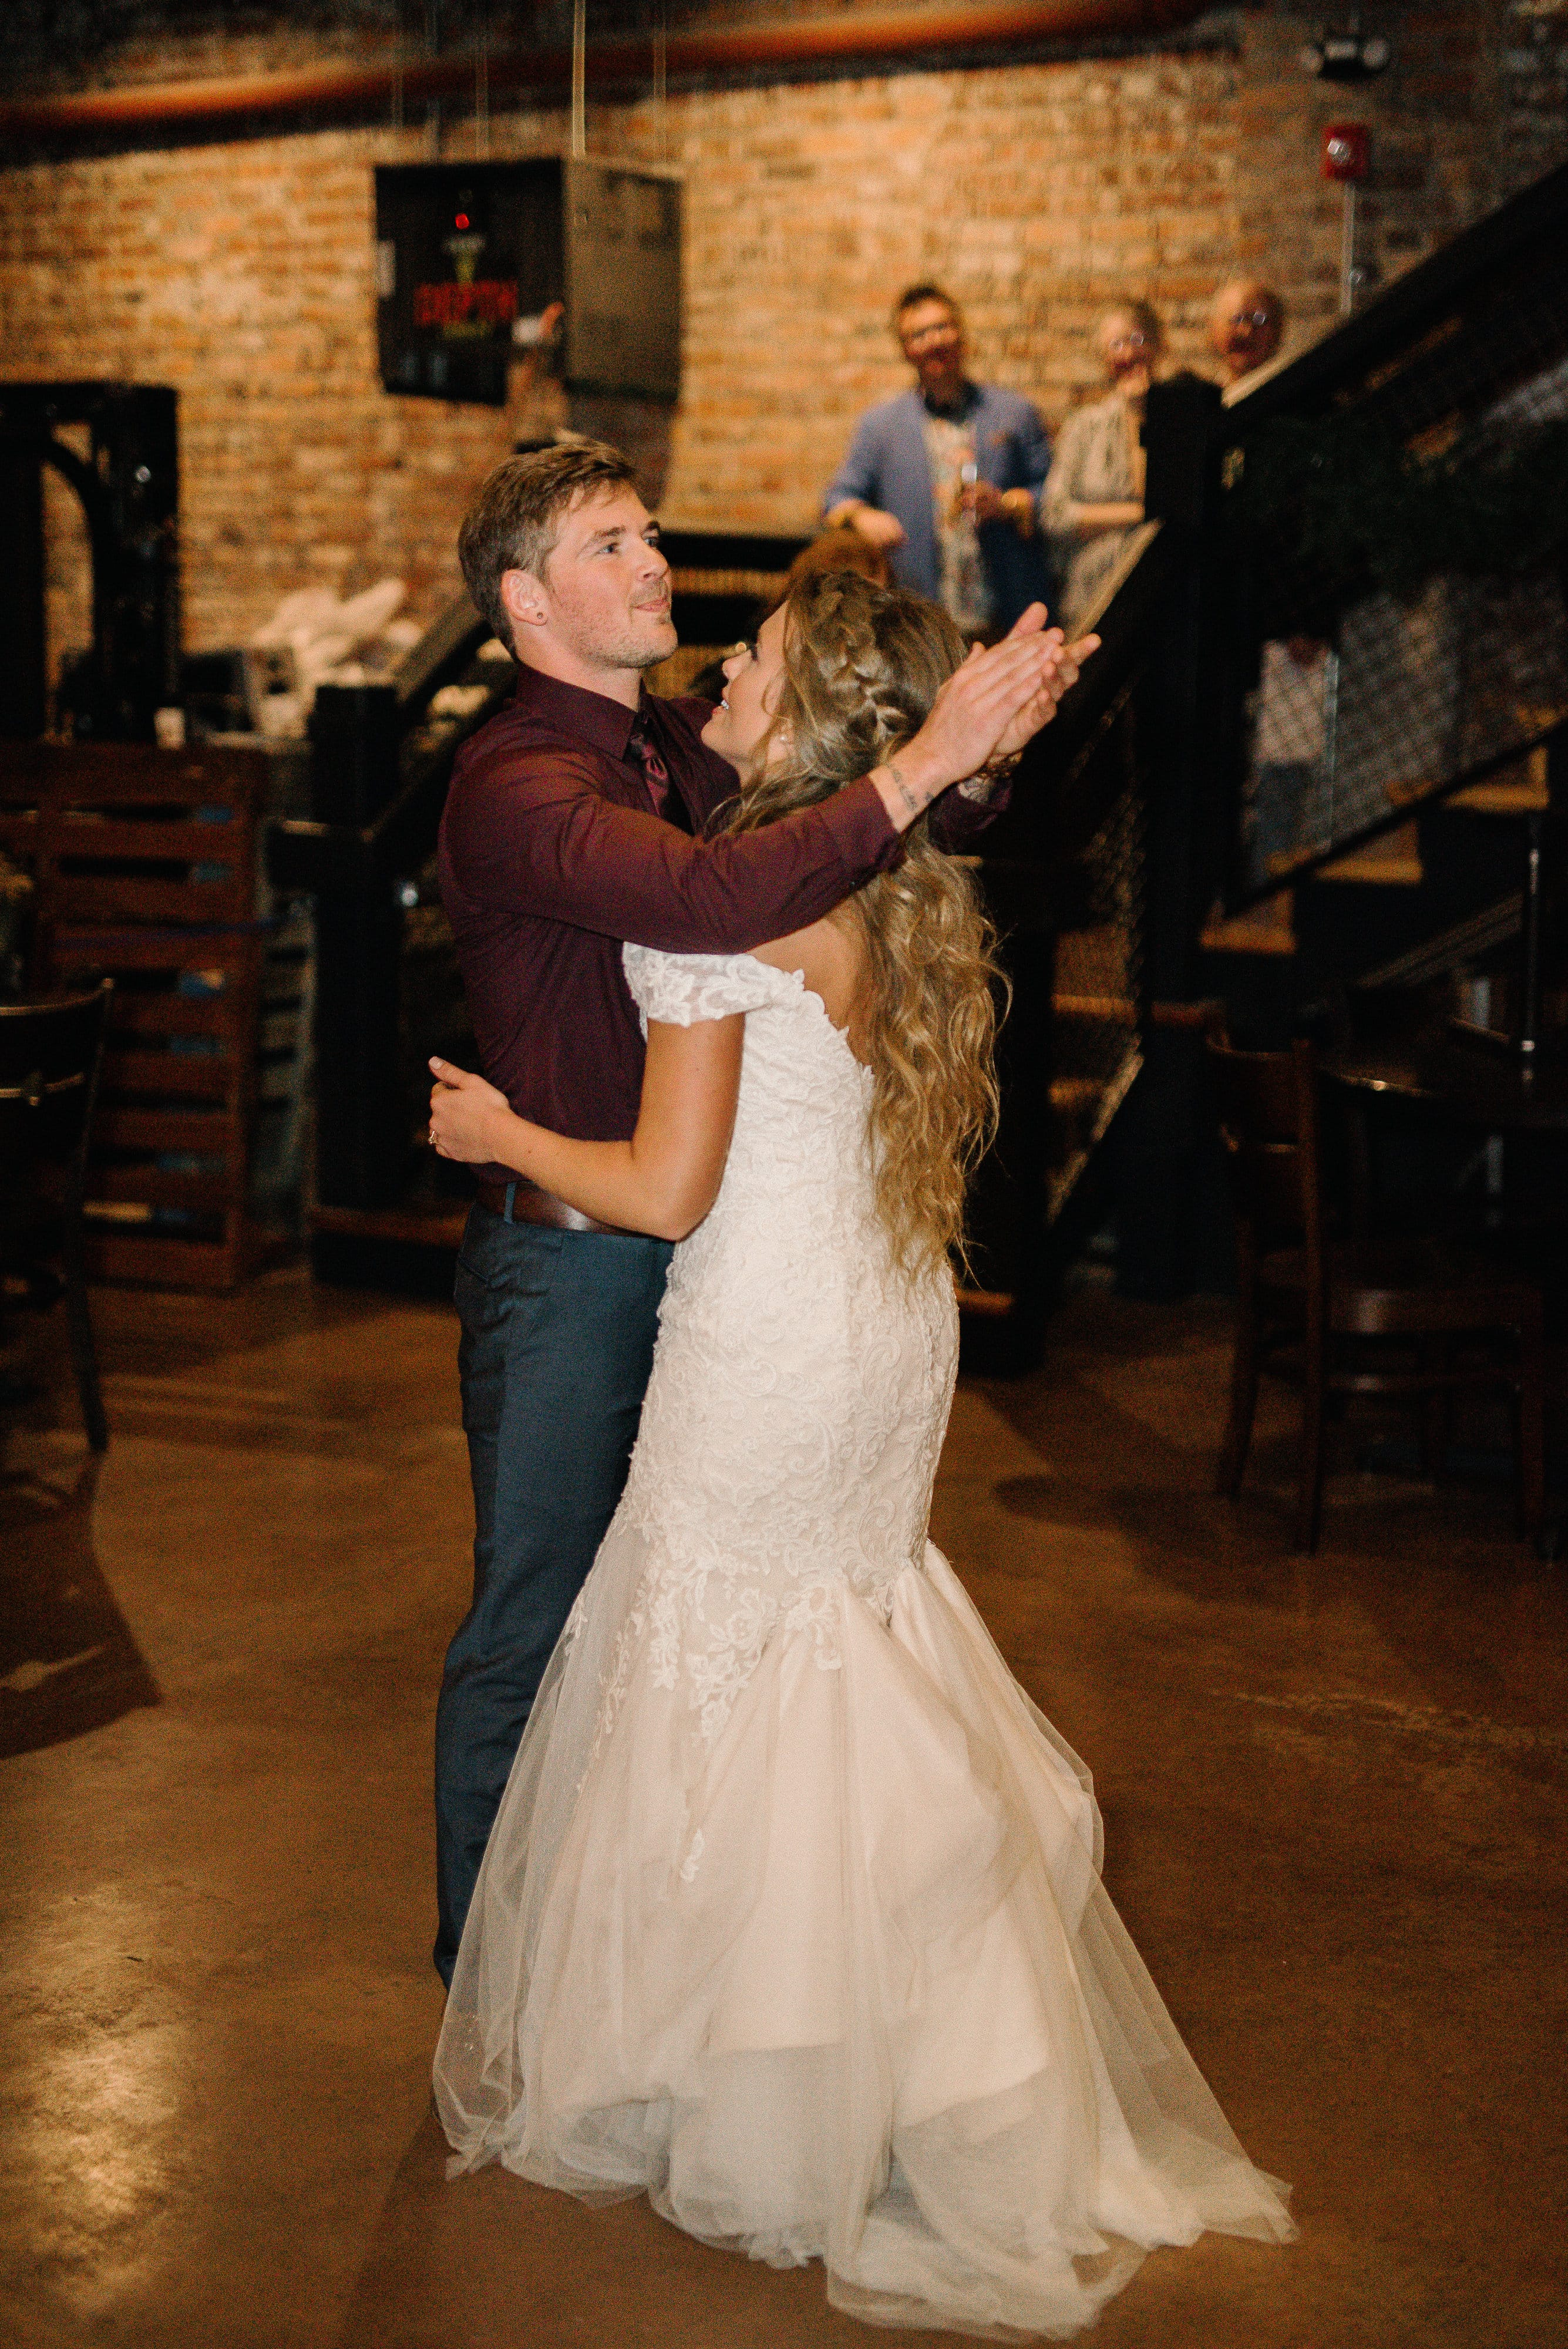 Adventure-loving couple planned winter wedding in brewery! Maggie Bride Destiny wearing Afton by Maggie Sottero.